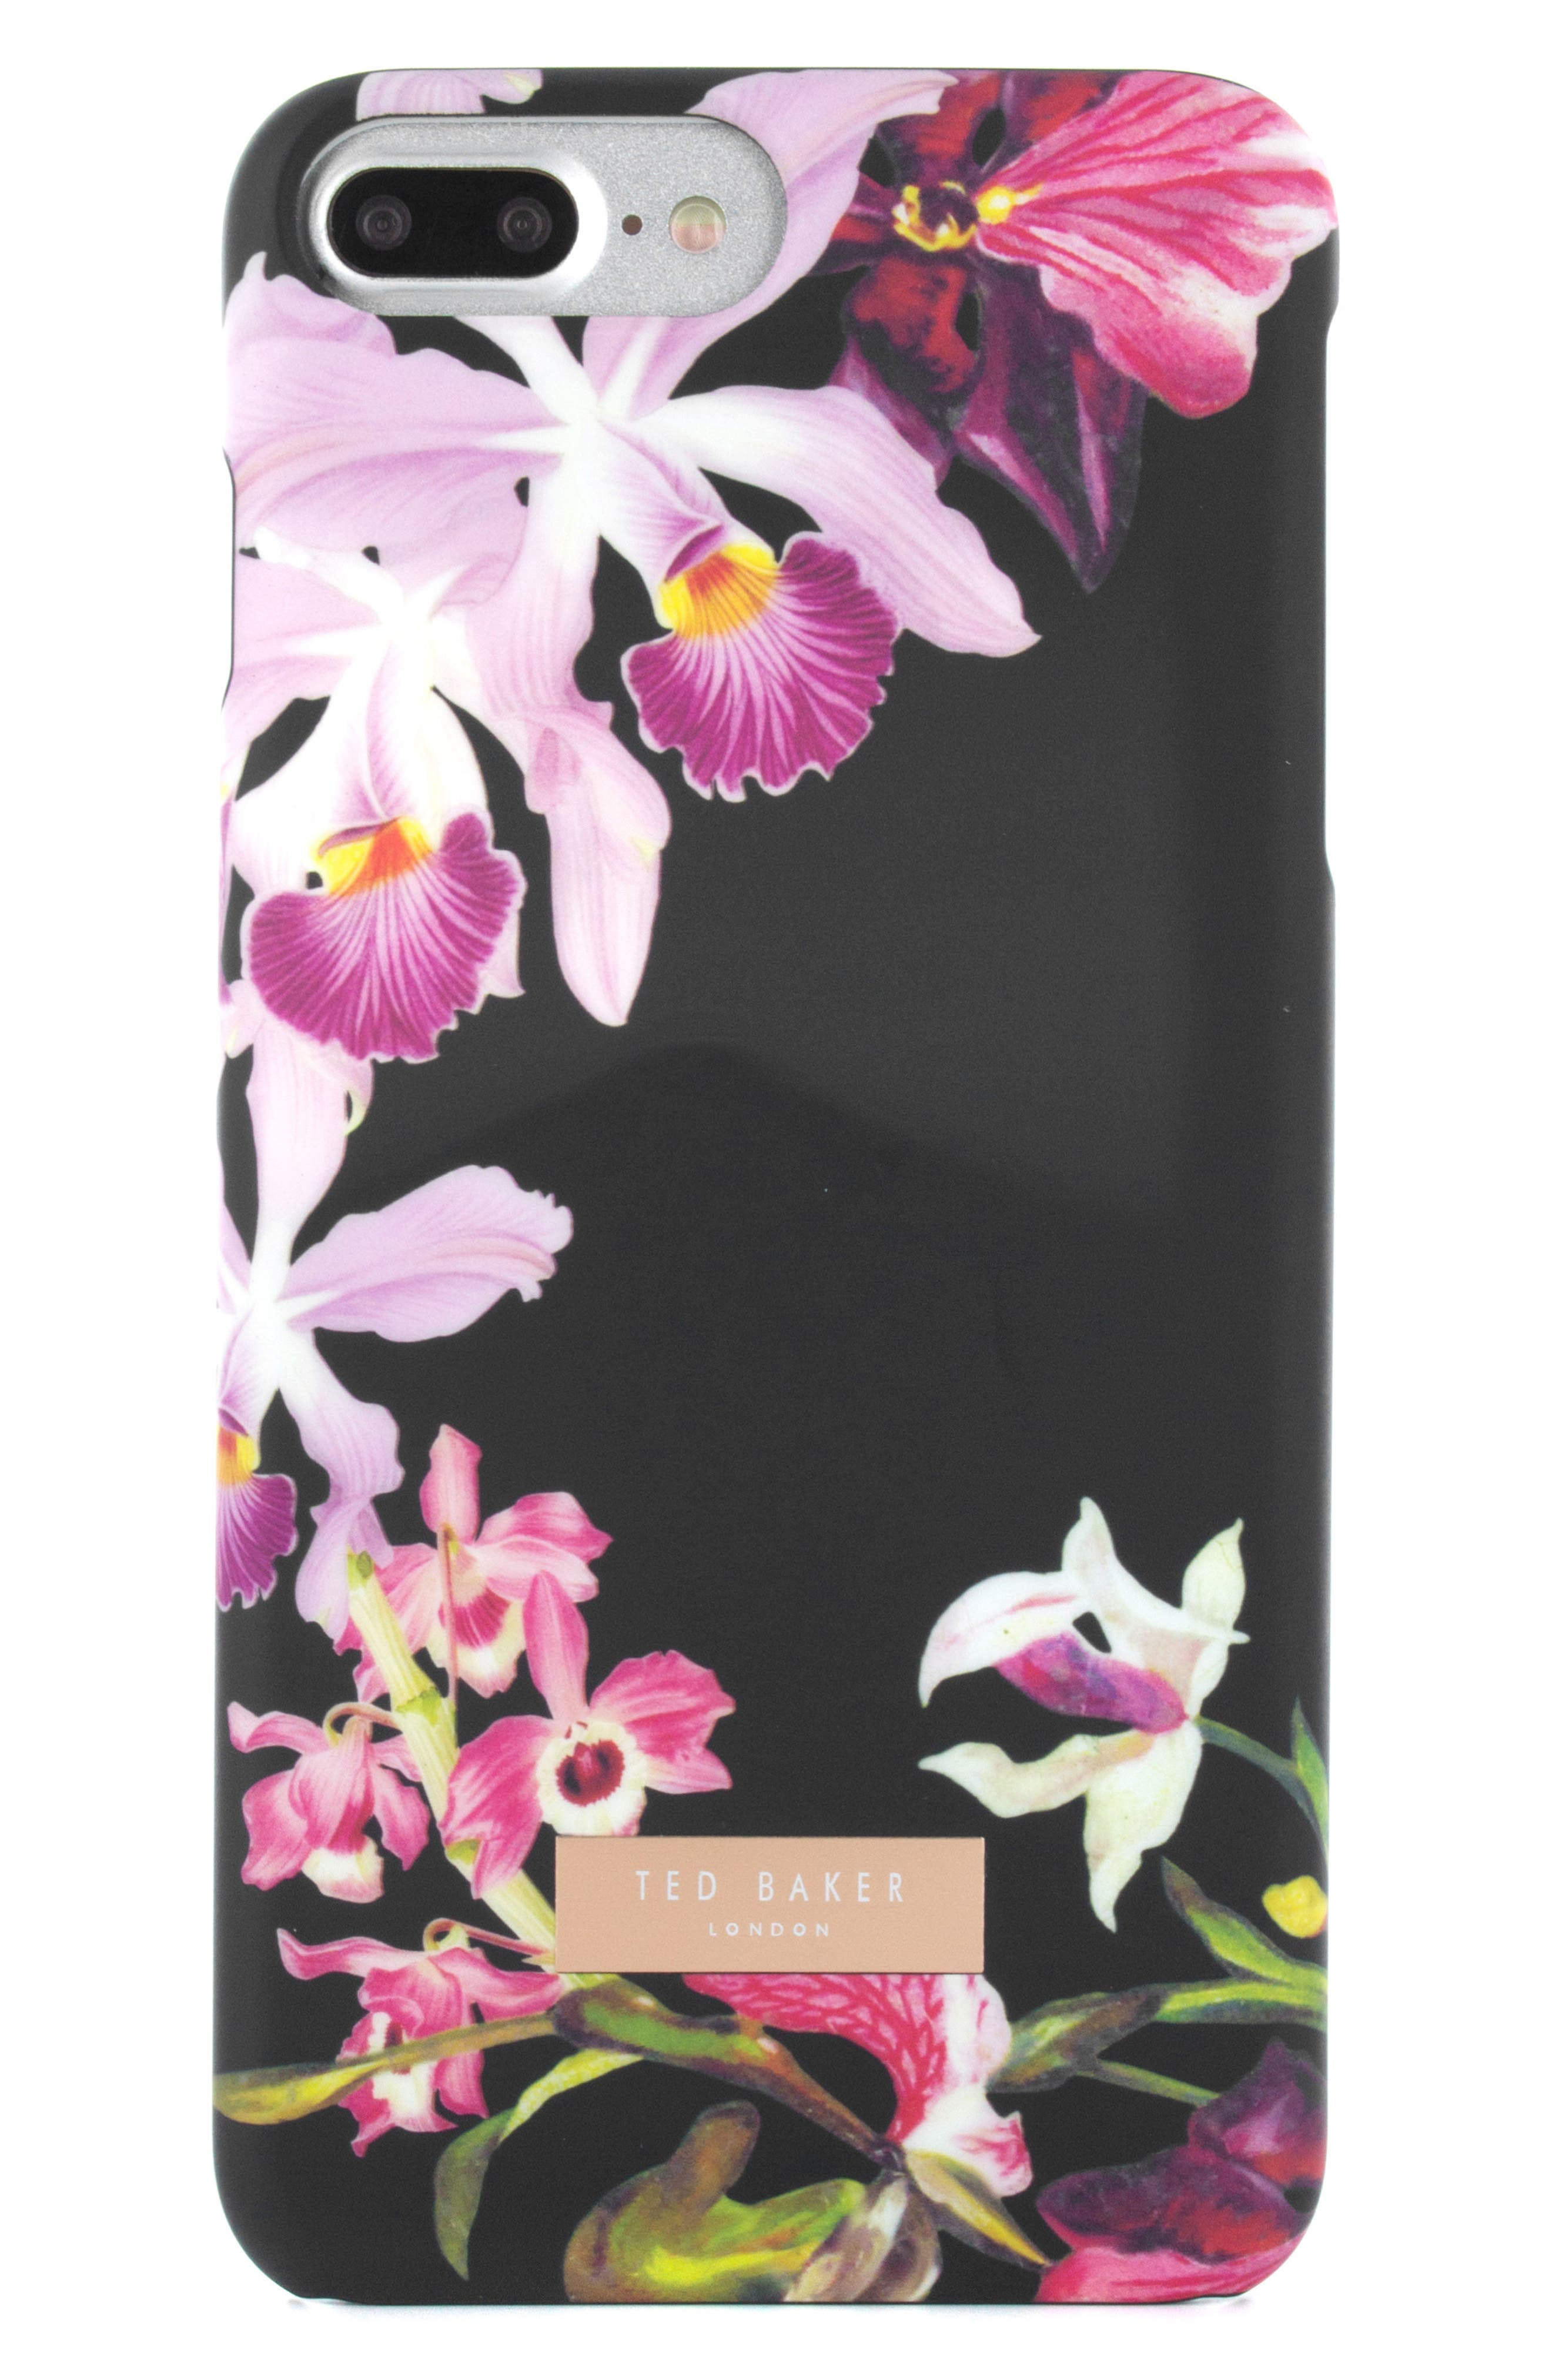 Ted Baker London Sidra Garden iPhone 6/6s/7/8 Plus Case